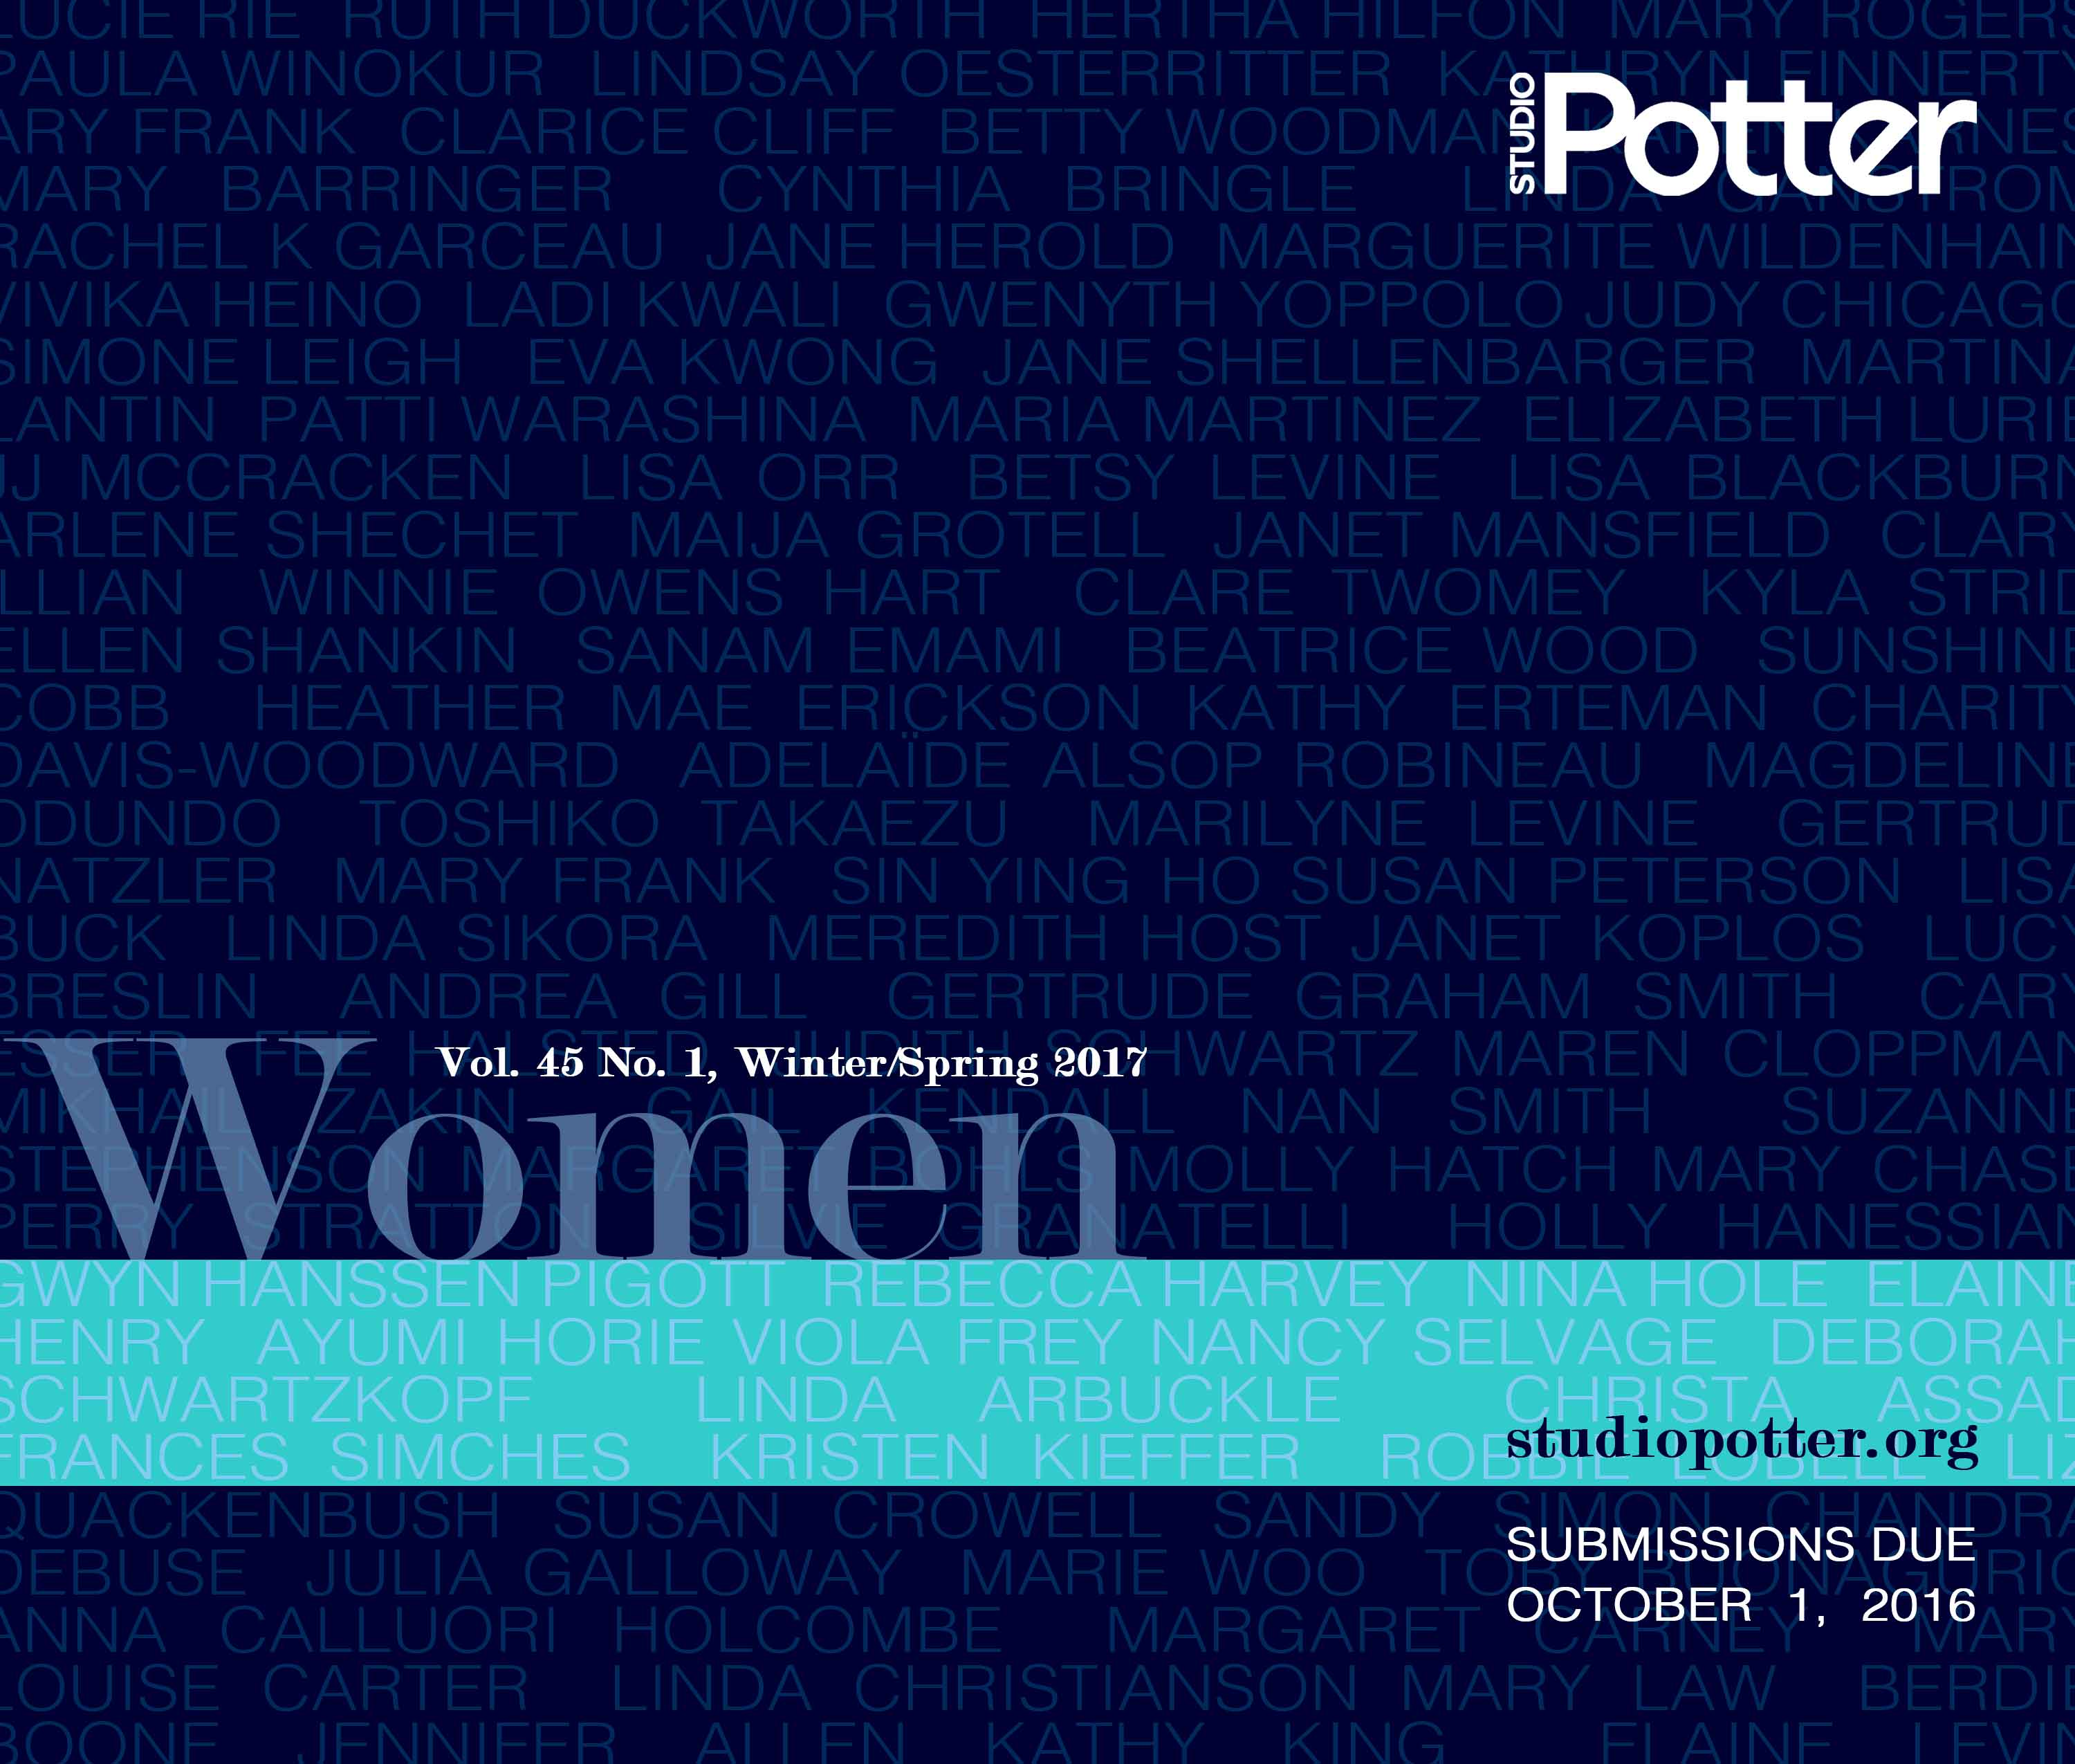 Call for Papers, Women, Vol. 45, No. 1, Winter/Spring 2017